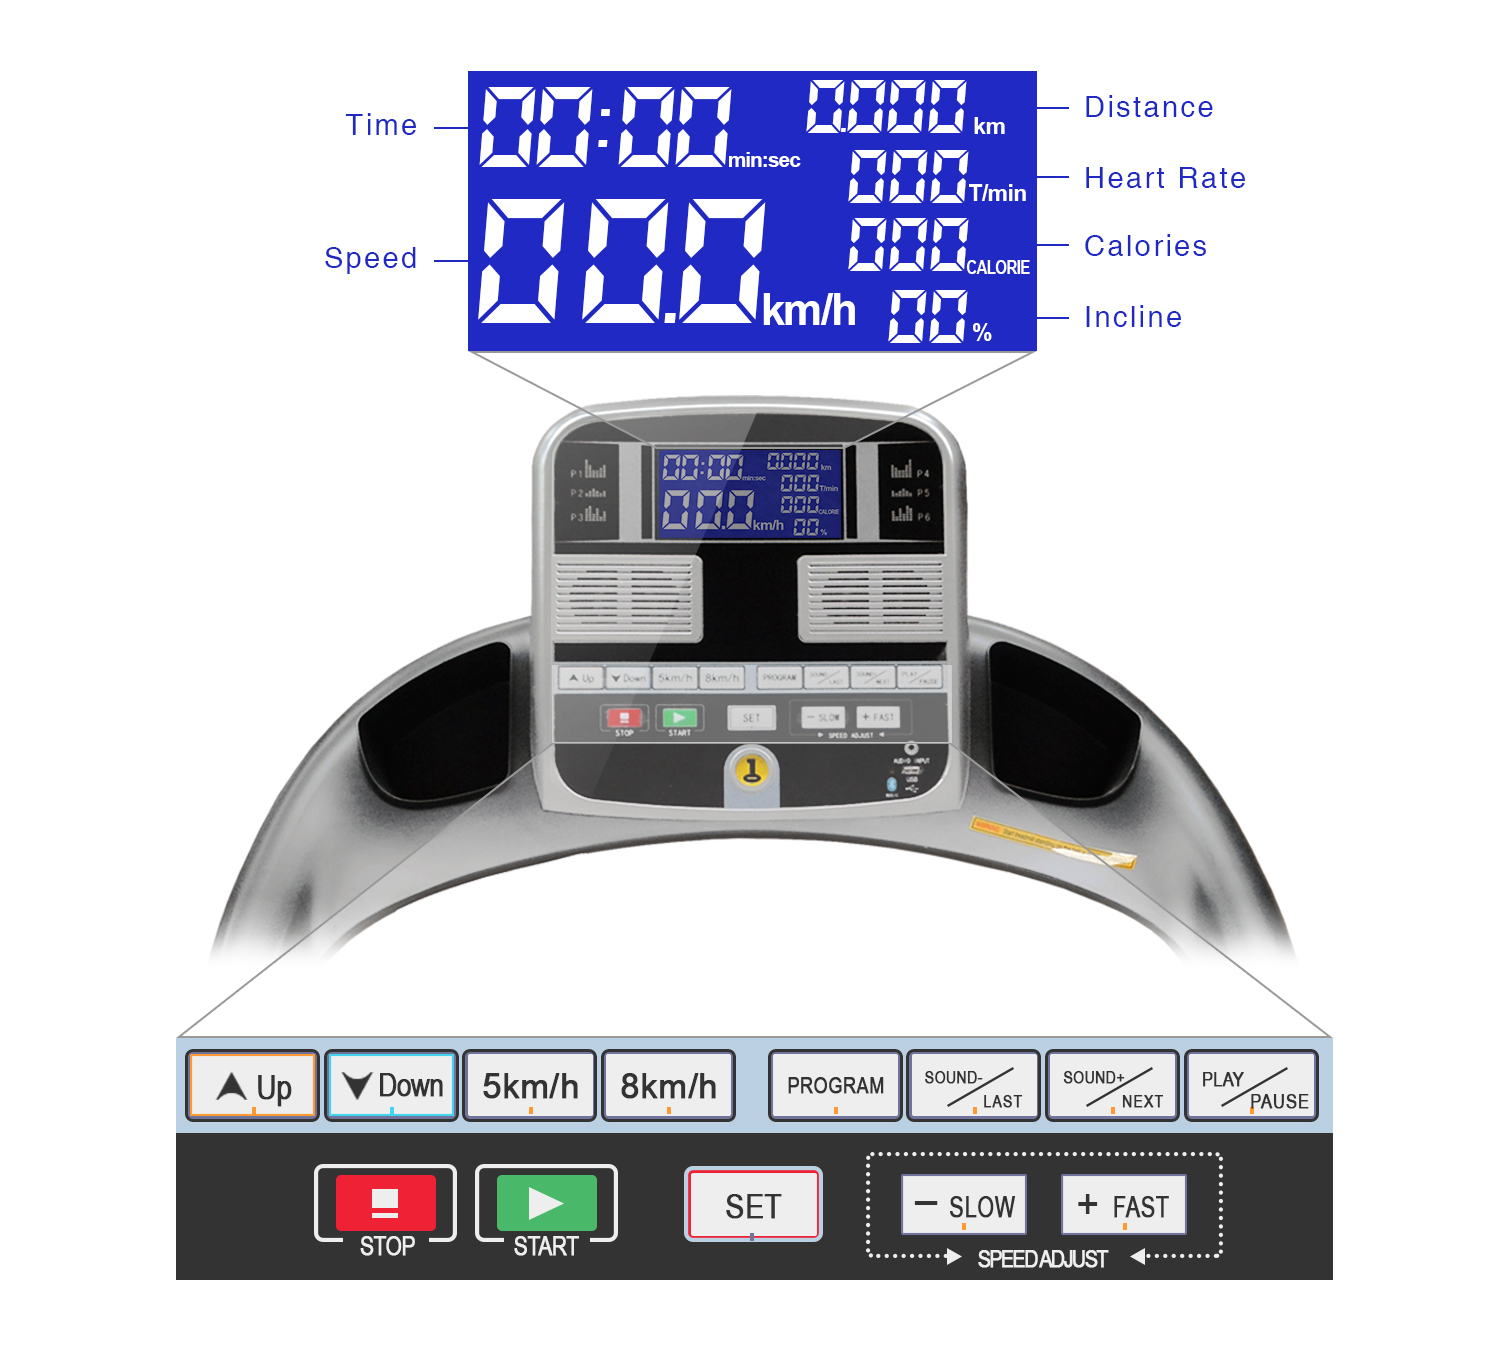 The S400 monitor features LCD display that shows you information about your workout.